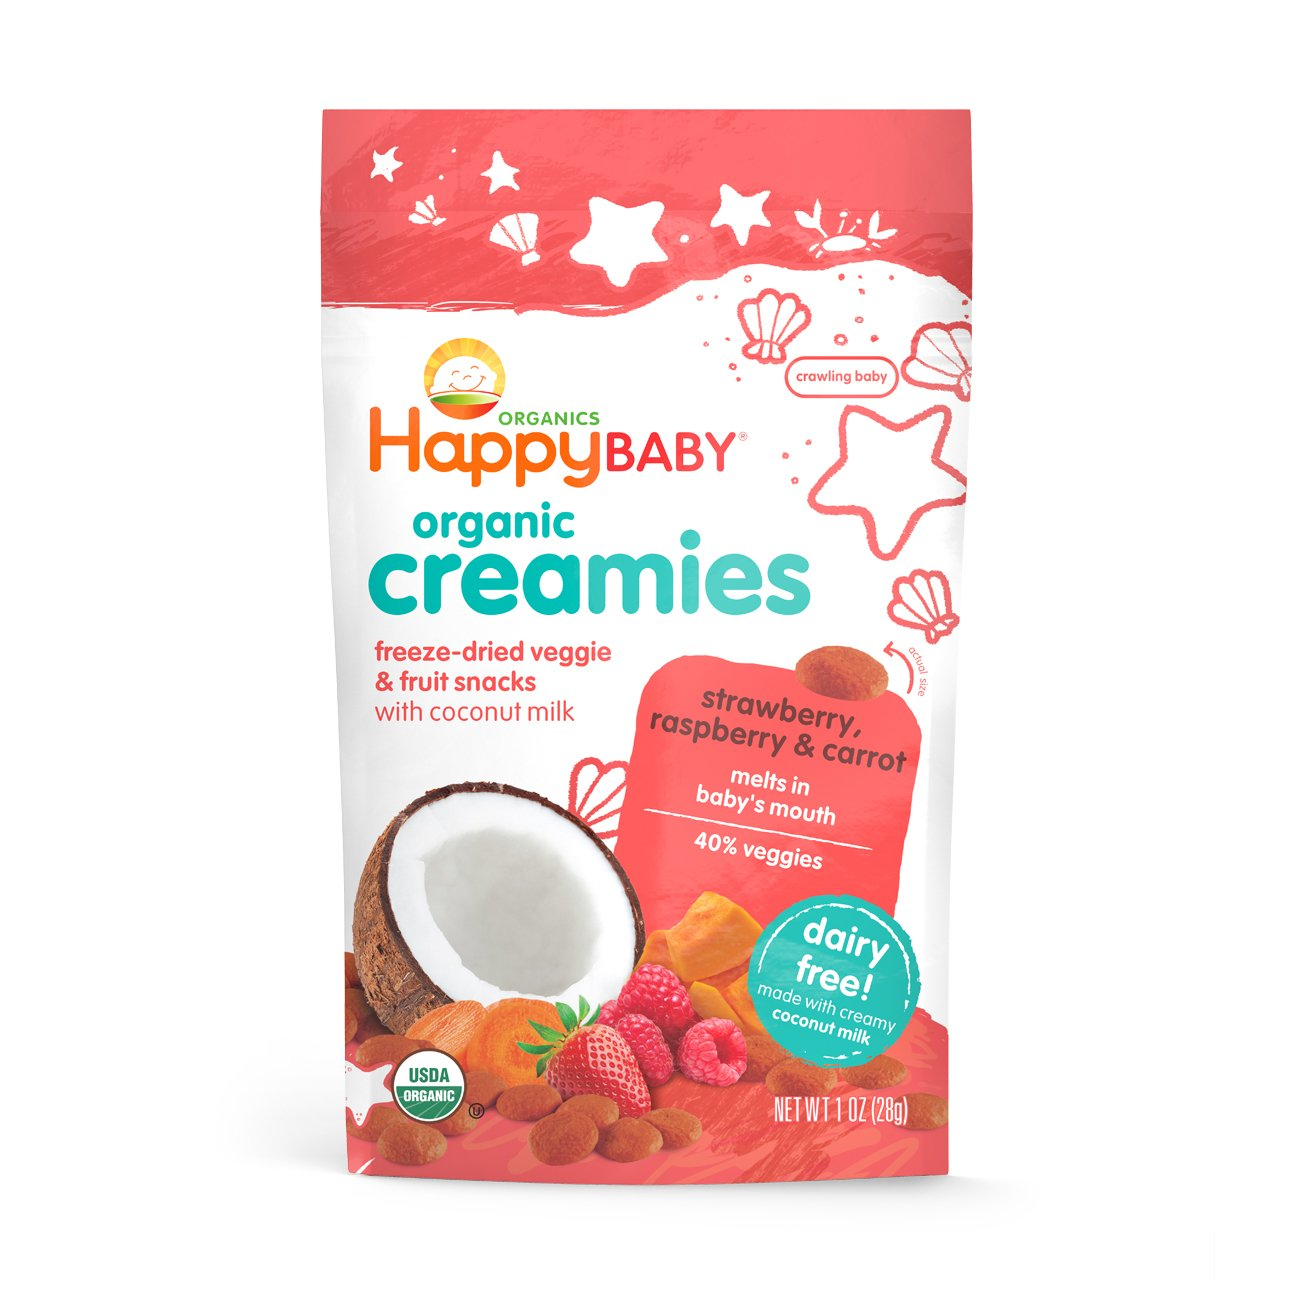 Happy Baby Organic Creamies Freeze-Dried Veggie & Fruit Snacks with Coconut Milk Strawberry Raspberry & Carrot, 1 Ounce Bag (Pack of 8)